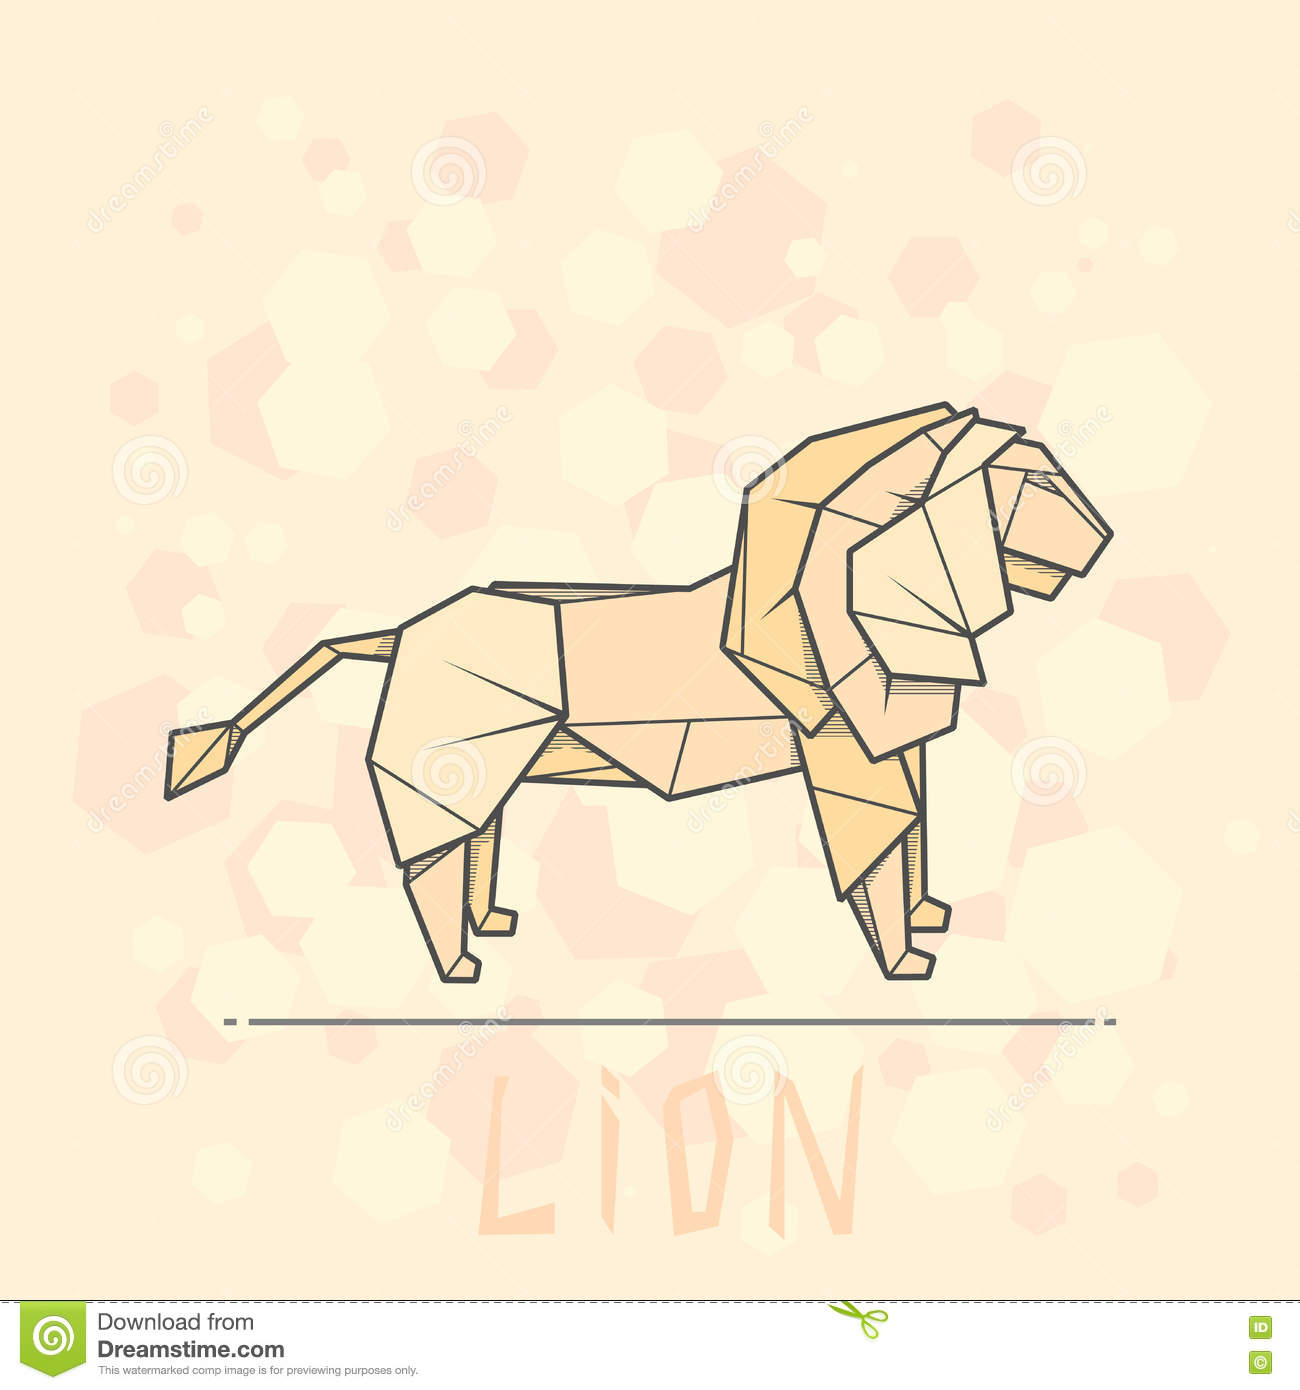 Vector Illustration Paper Origami Of Lion Stock